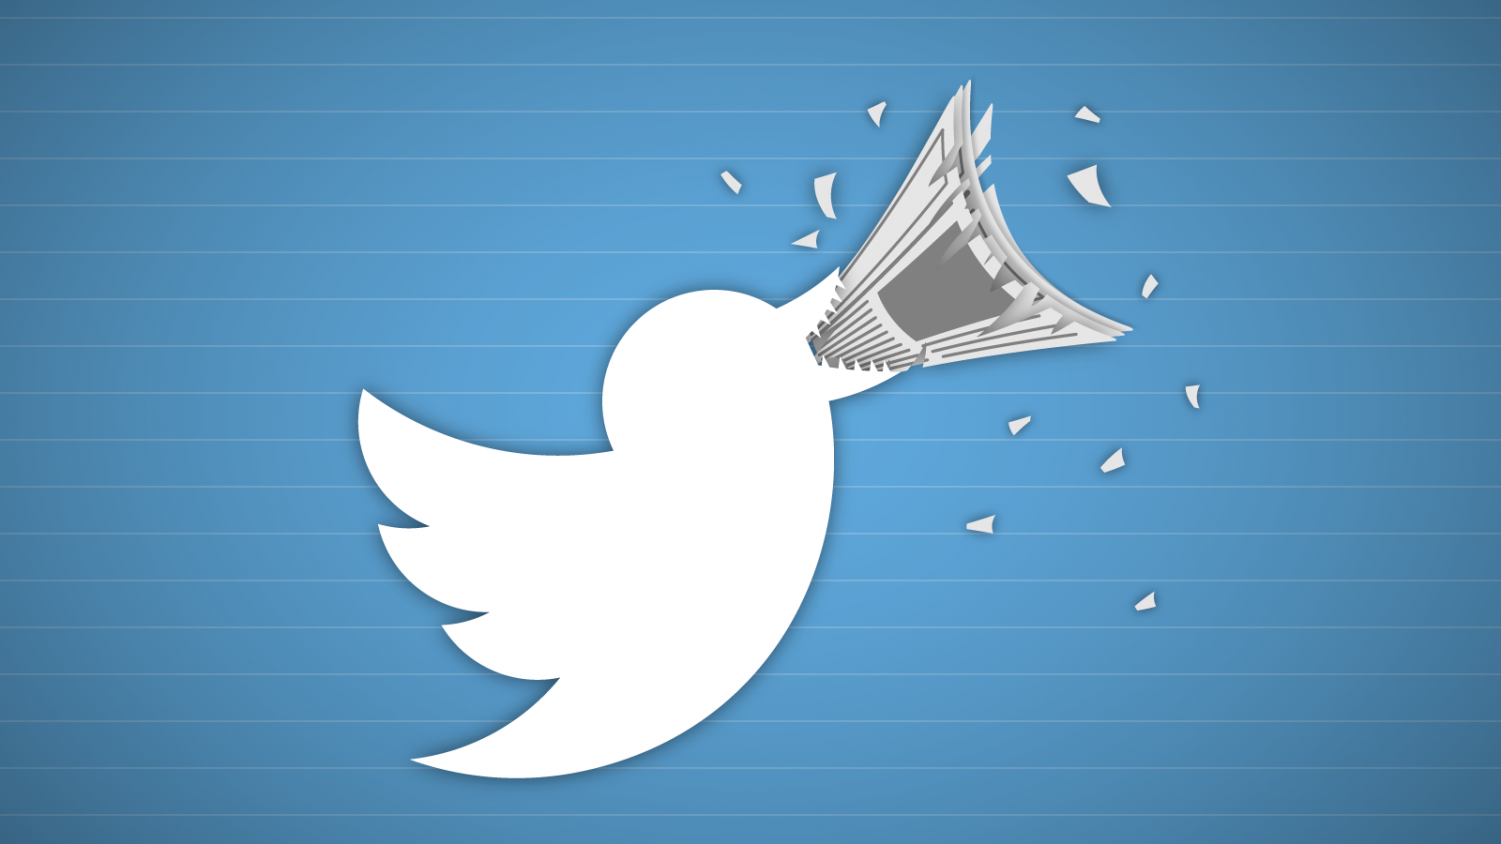 The Twitter bird logo shredding a newspaper in his beak.